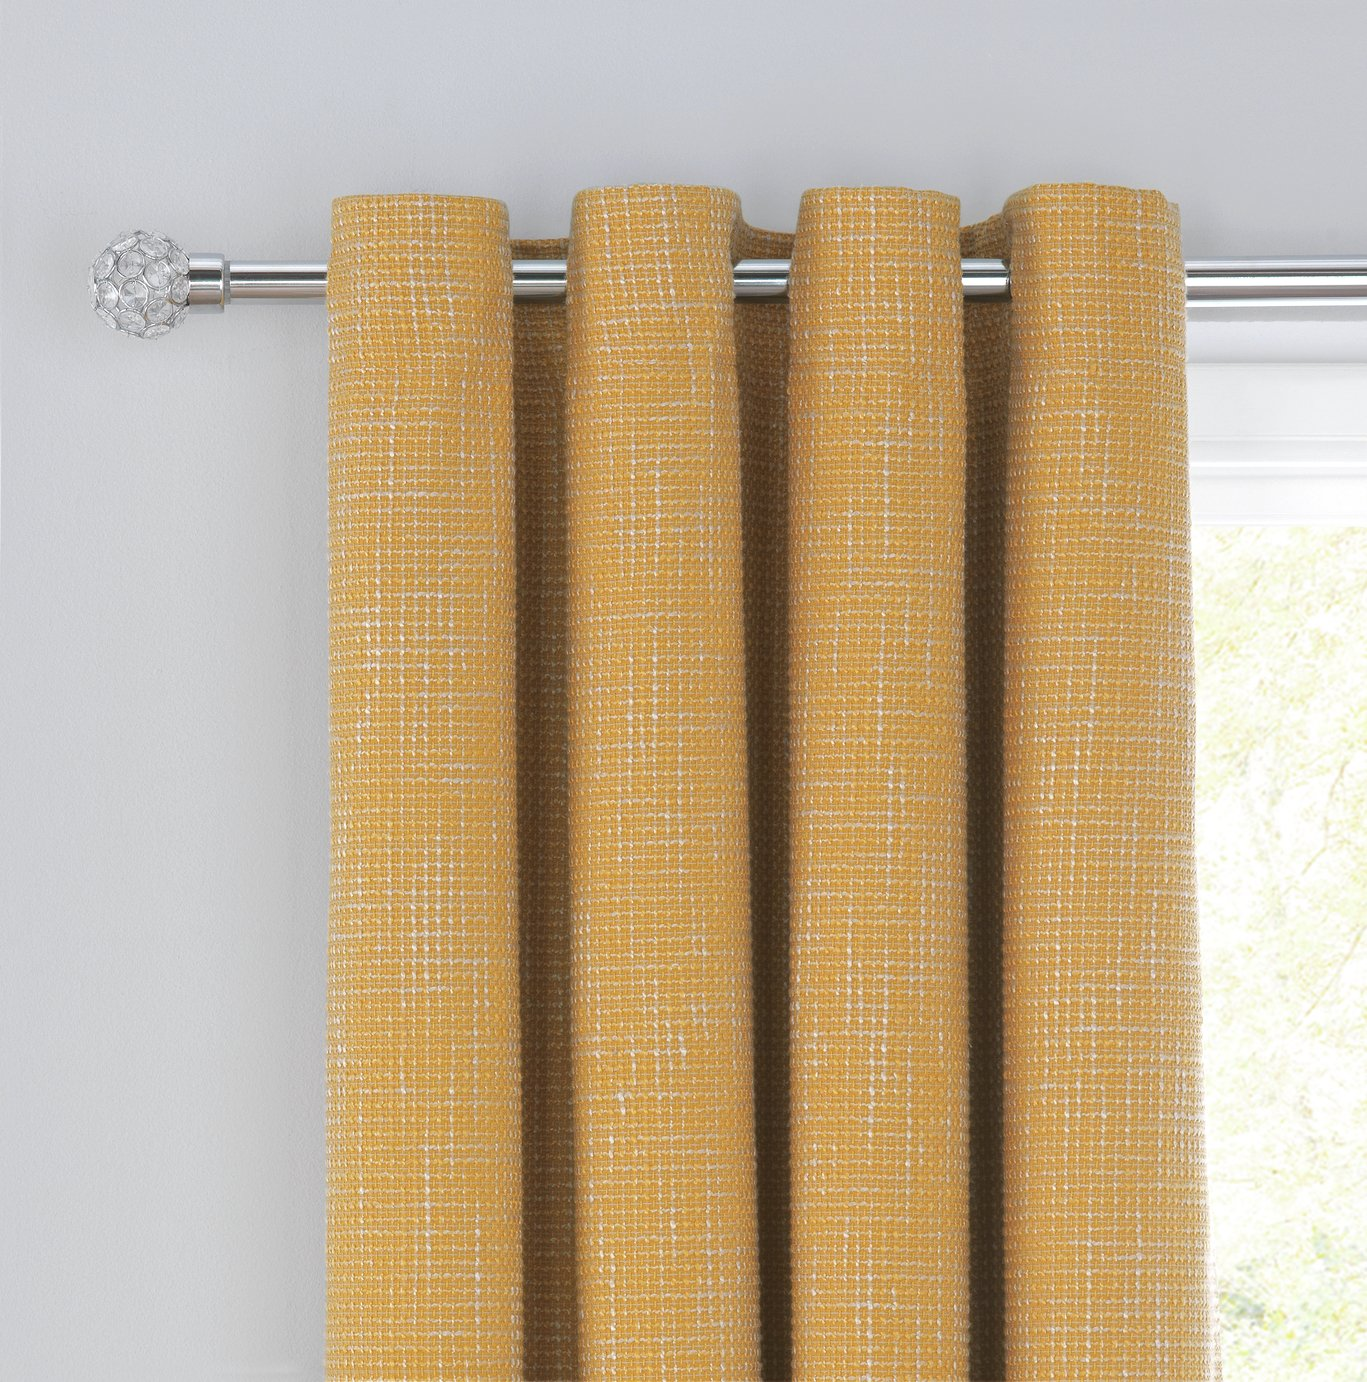 Argos Home Weave Blackout Lined Eyelet Curtains - Mustard